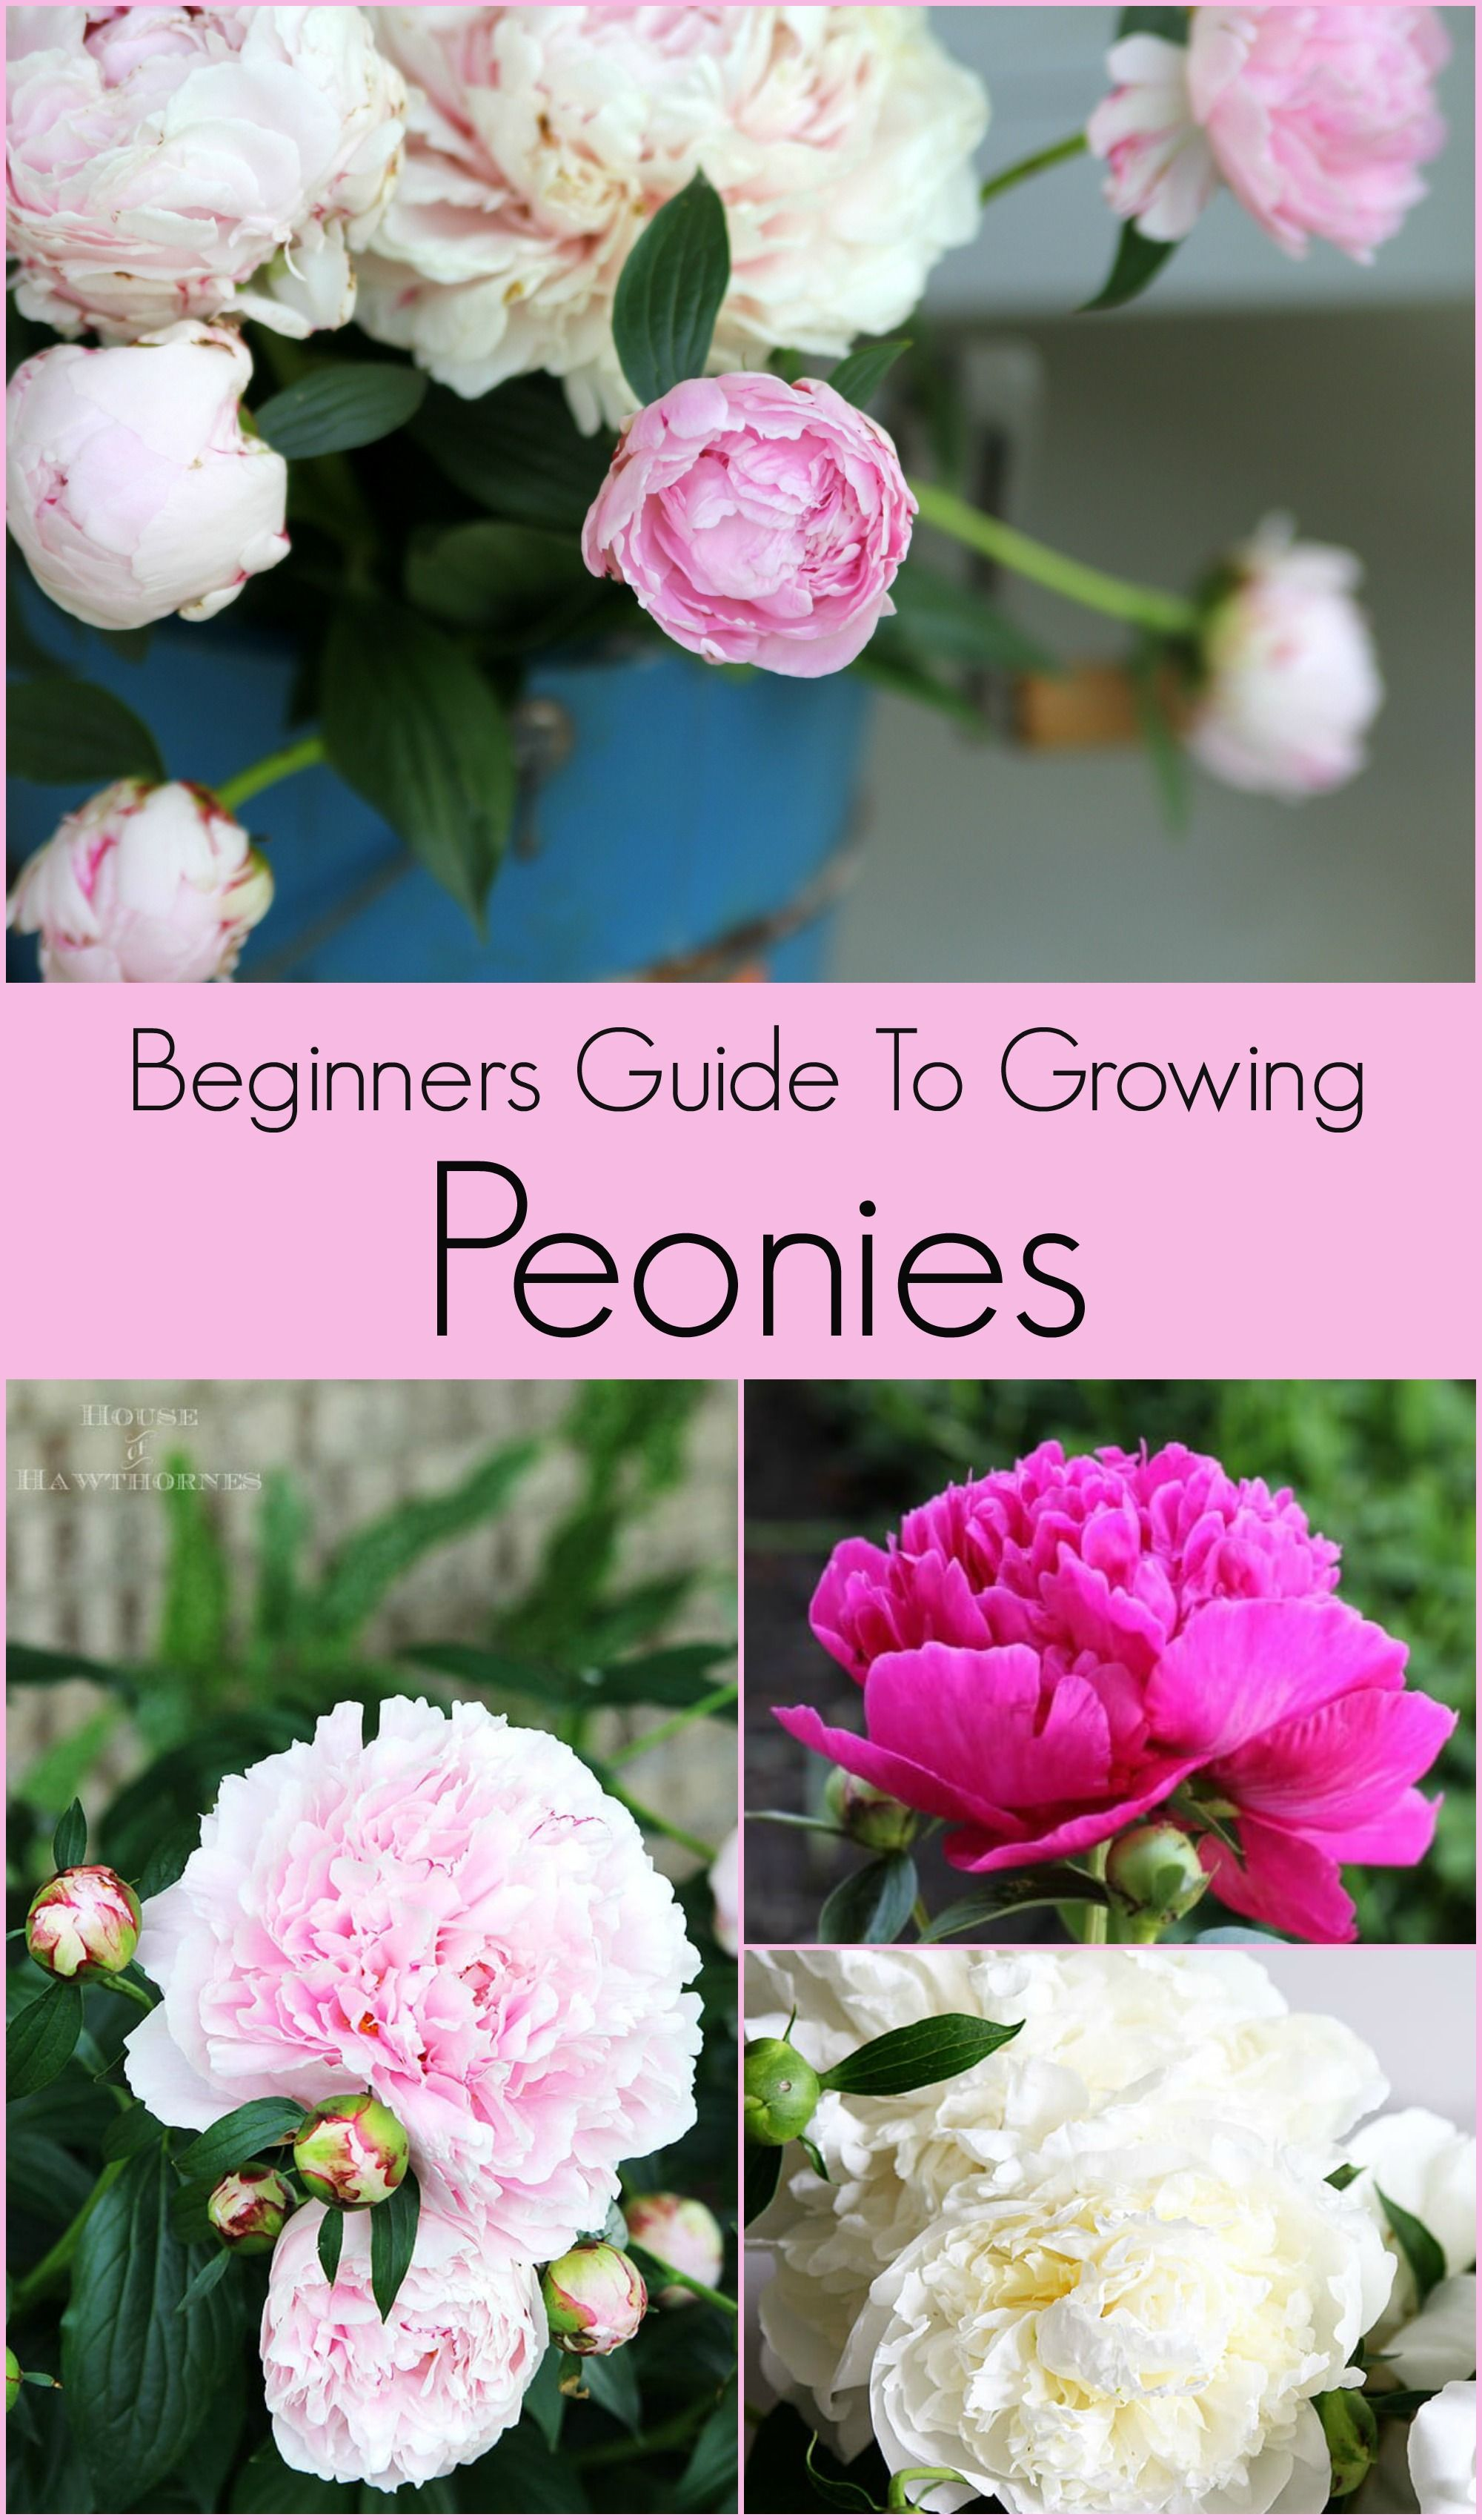 How To Grow Peonies Your Neighbors Will Envy #gardenlandscaping